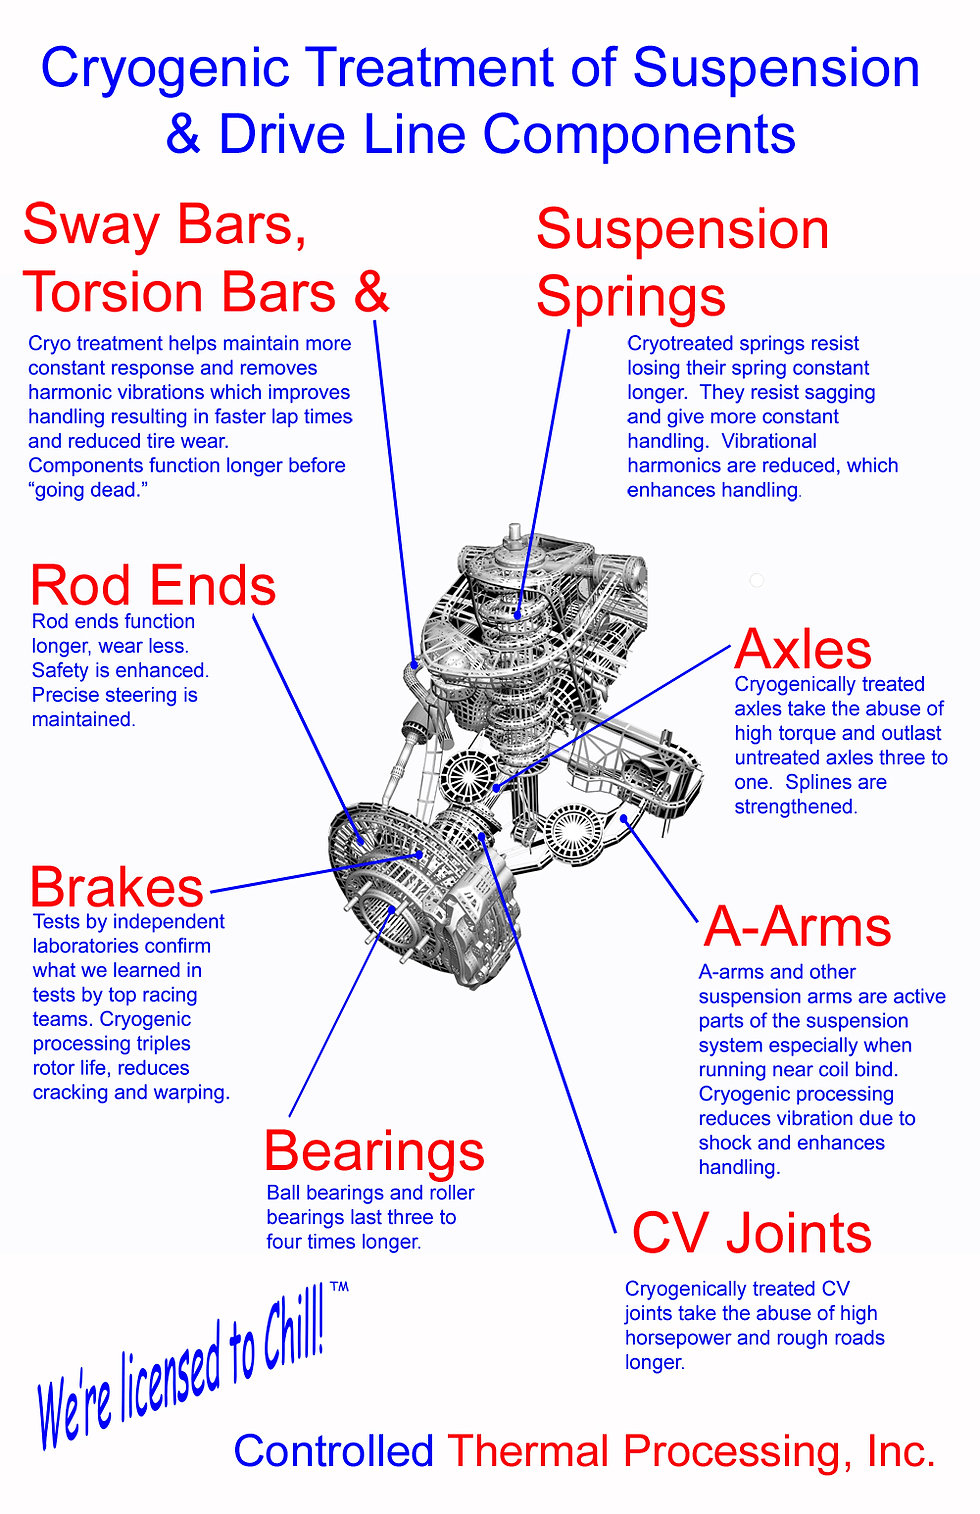 Cryogenic Treatment of Suspension and Driveline Components